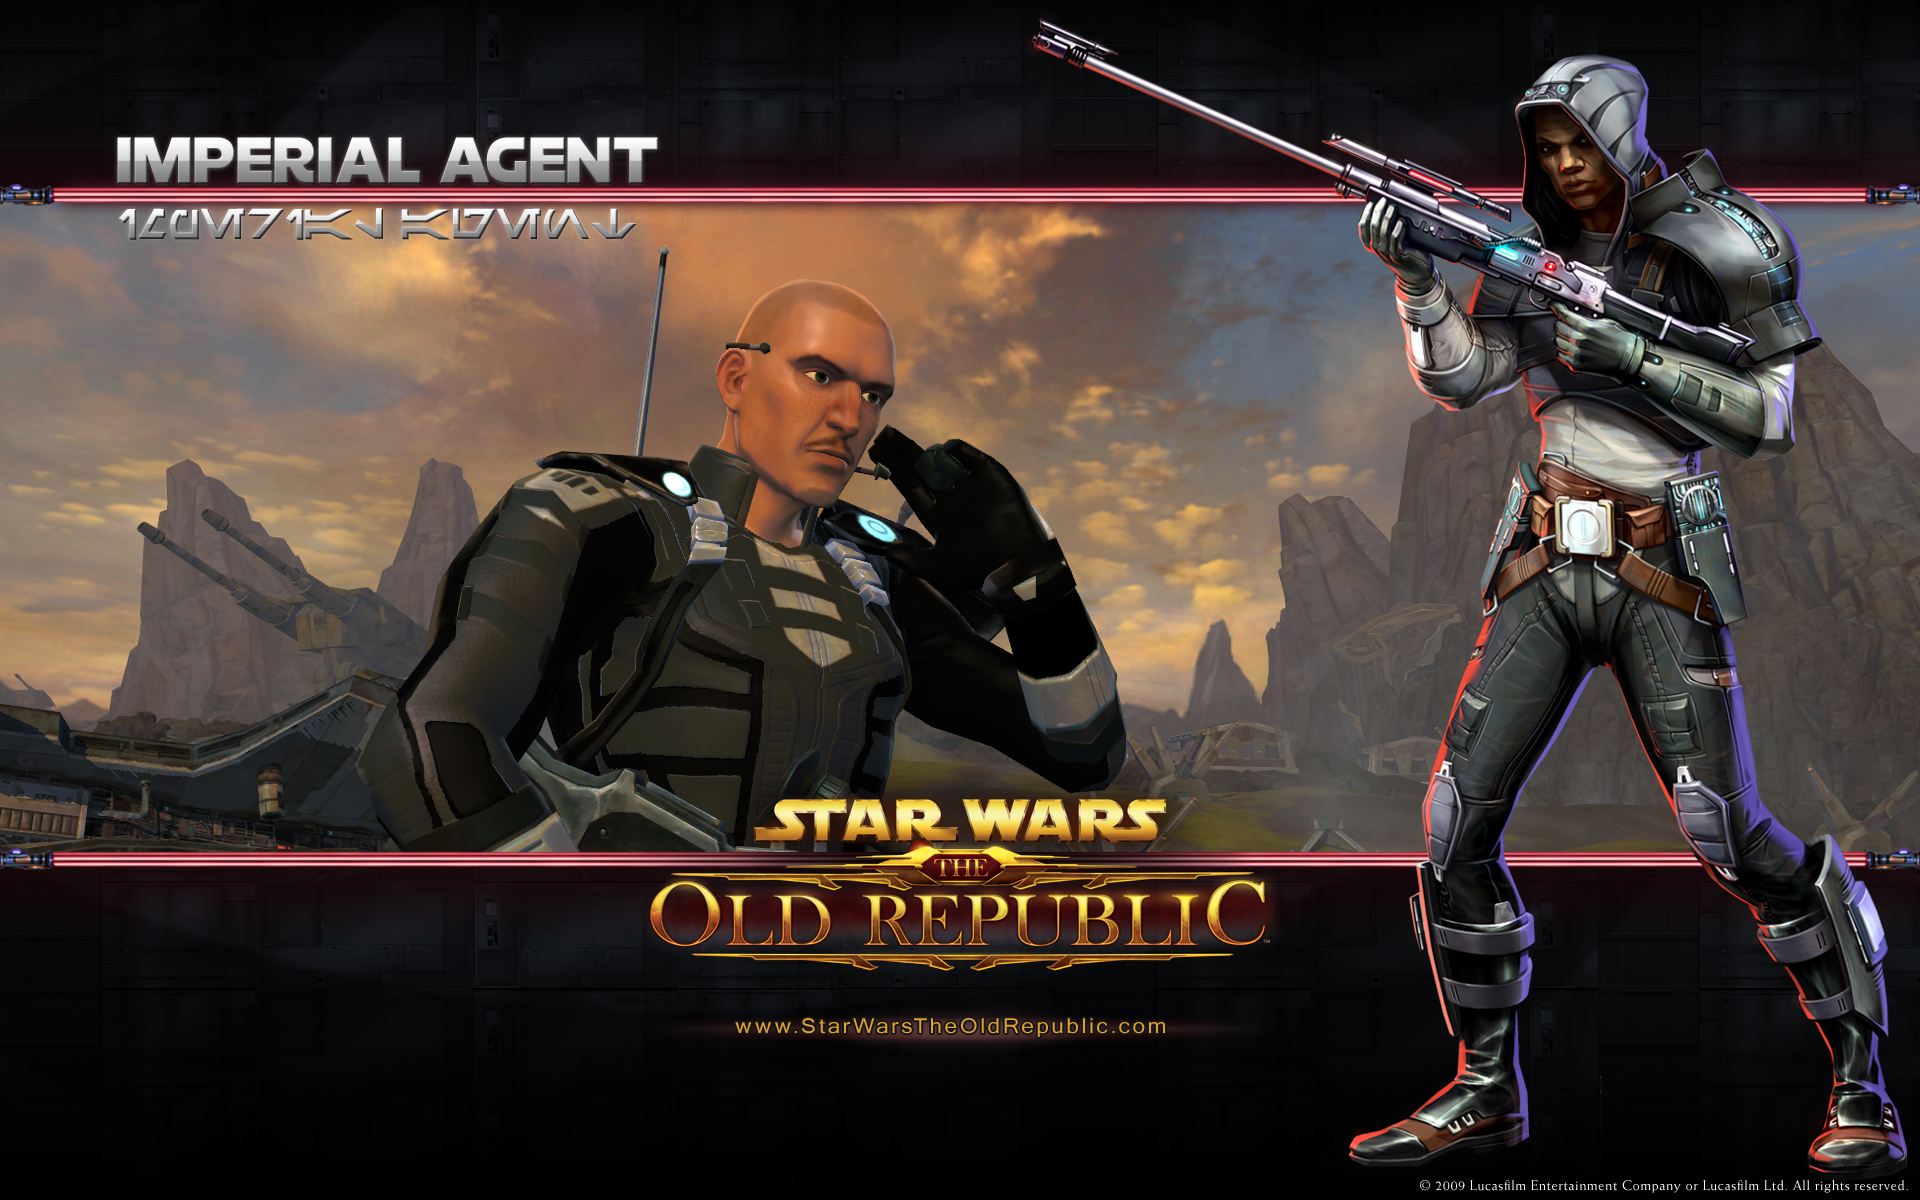 Old Republic Imperial Agent Wallpapers Old Republic Imperial Agent 1920x1200